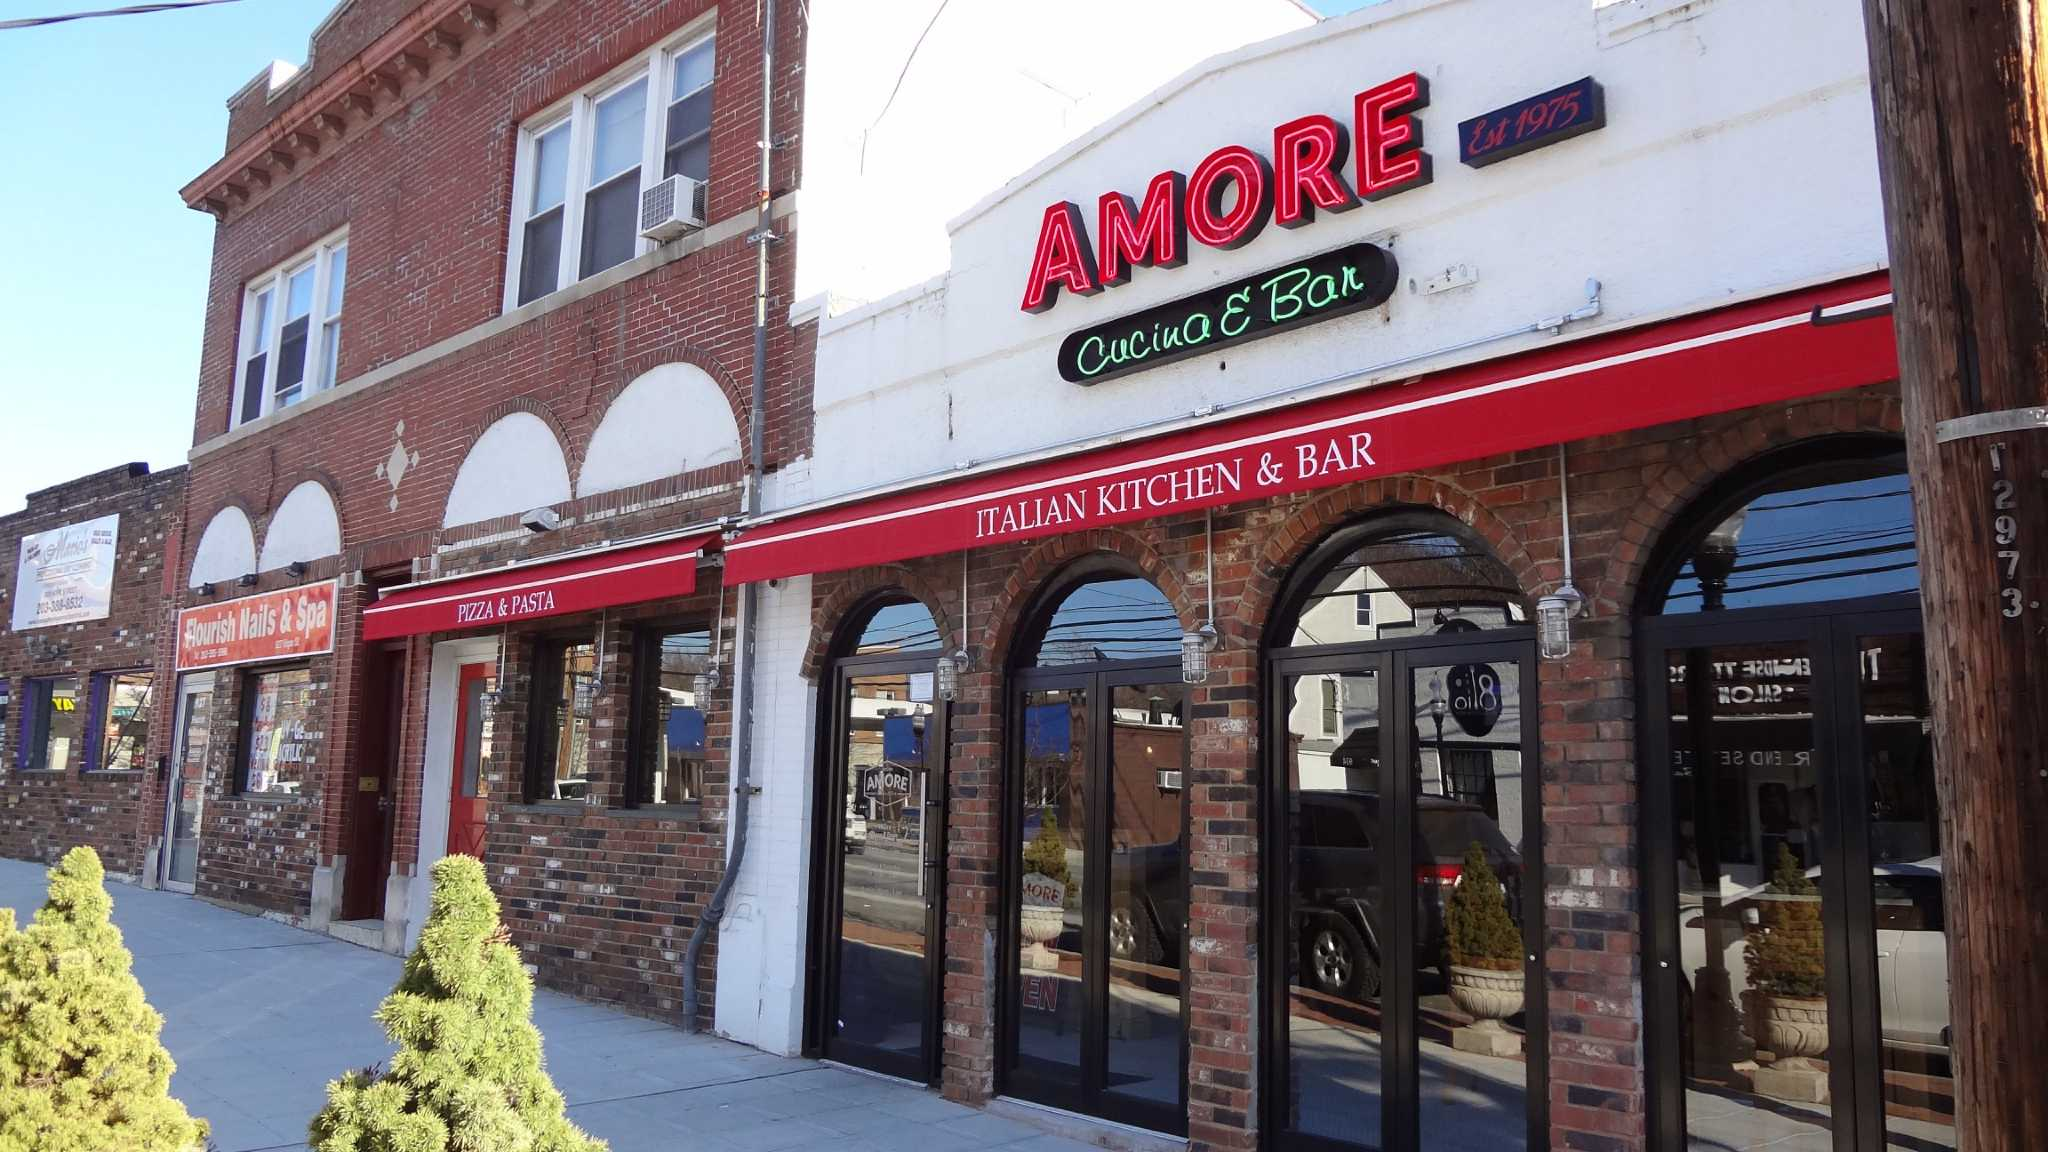 Cucina & Amore Inc Irs Stamford Restaurateur Skims Them Out Of 122 177